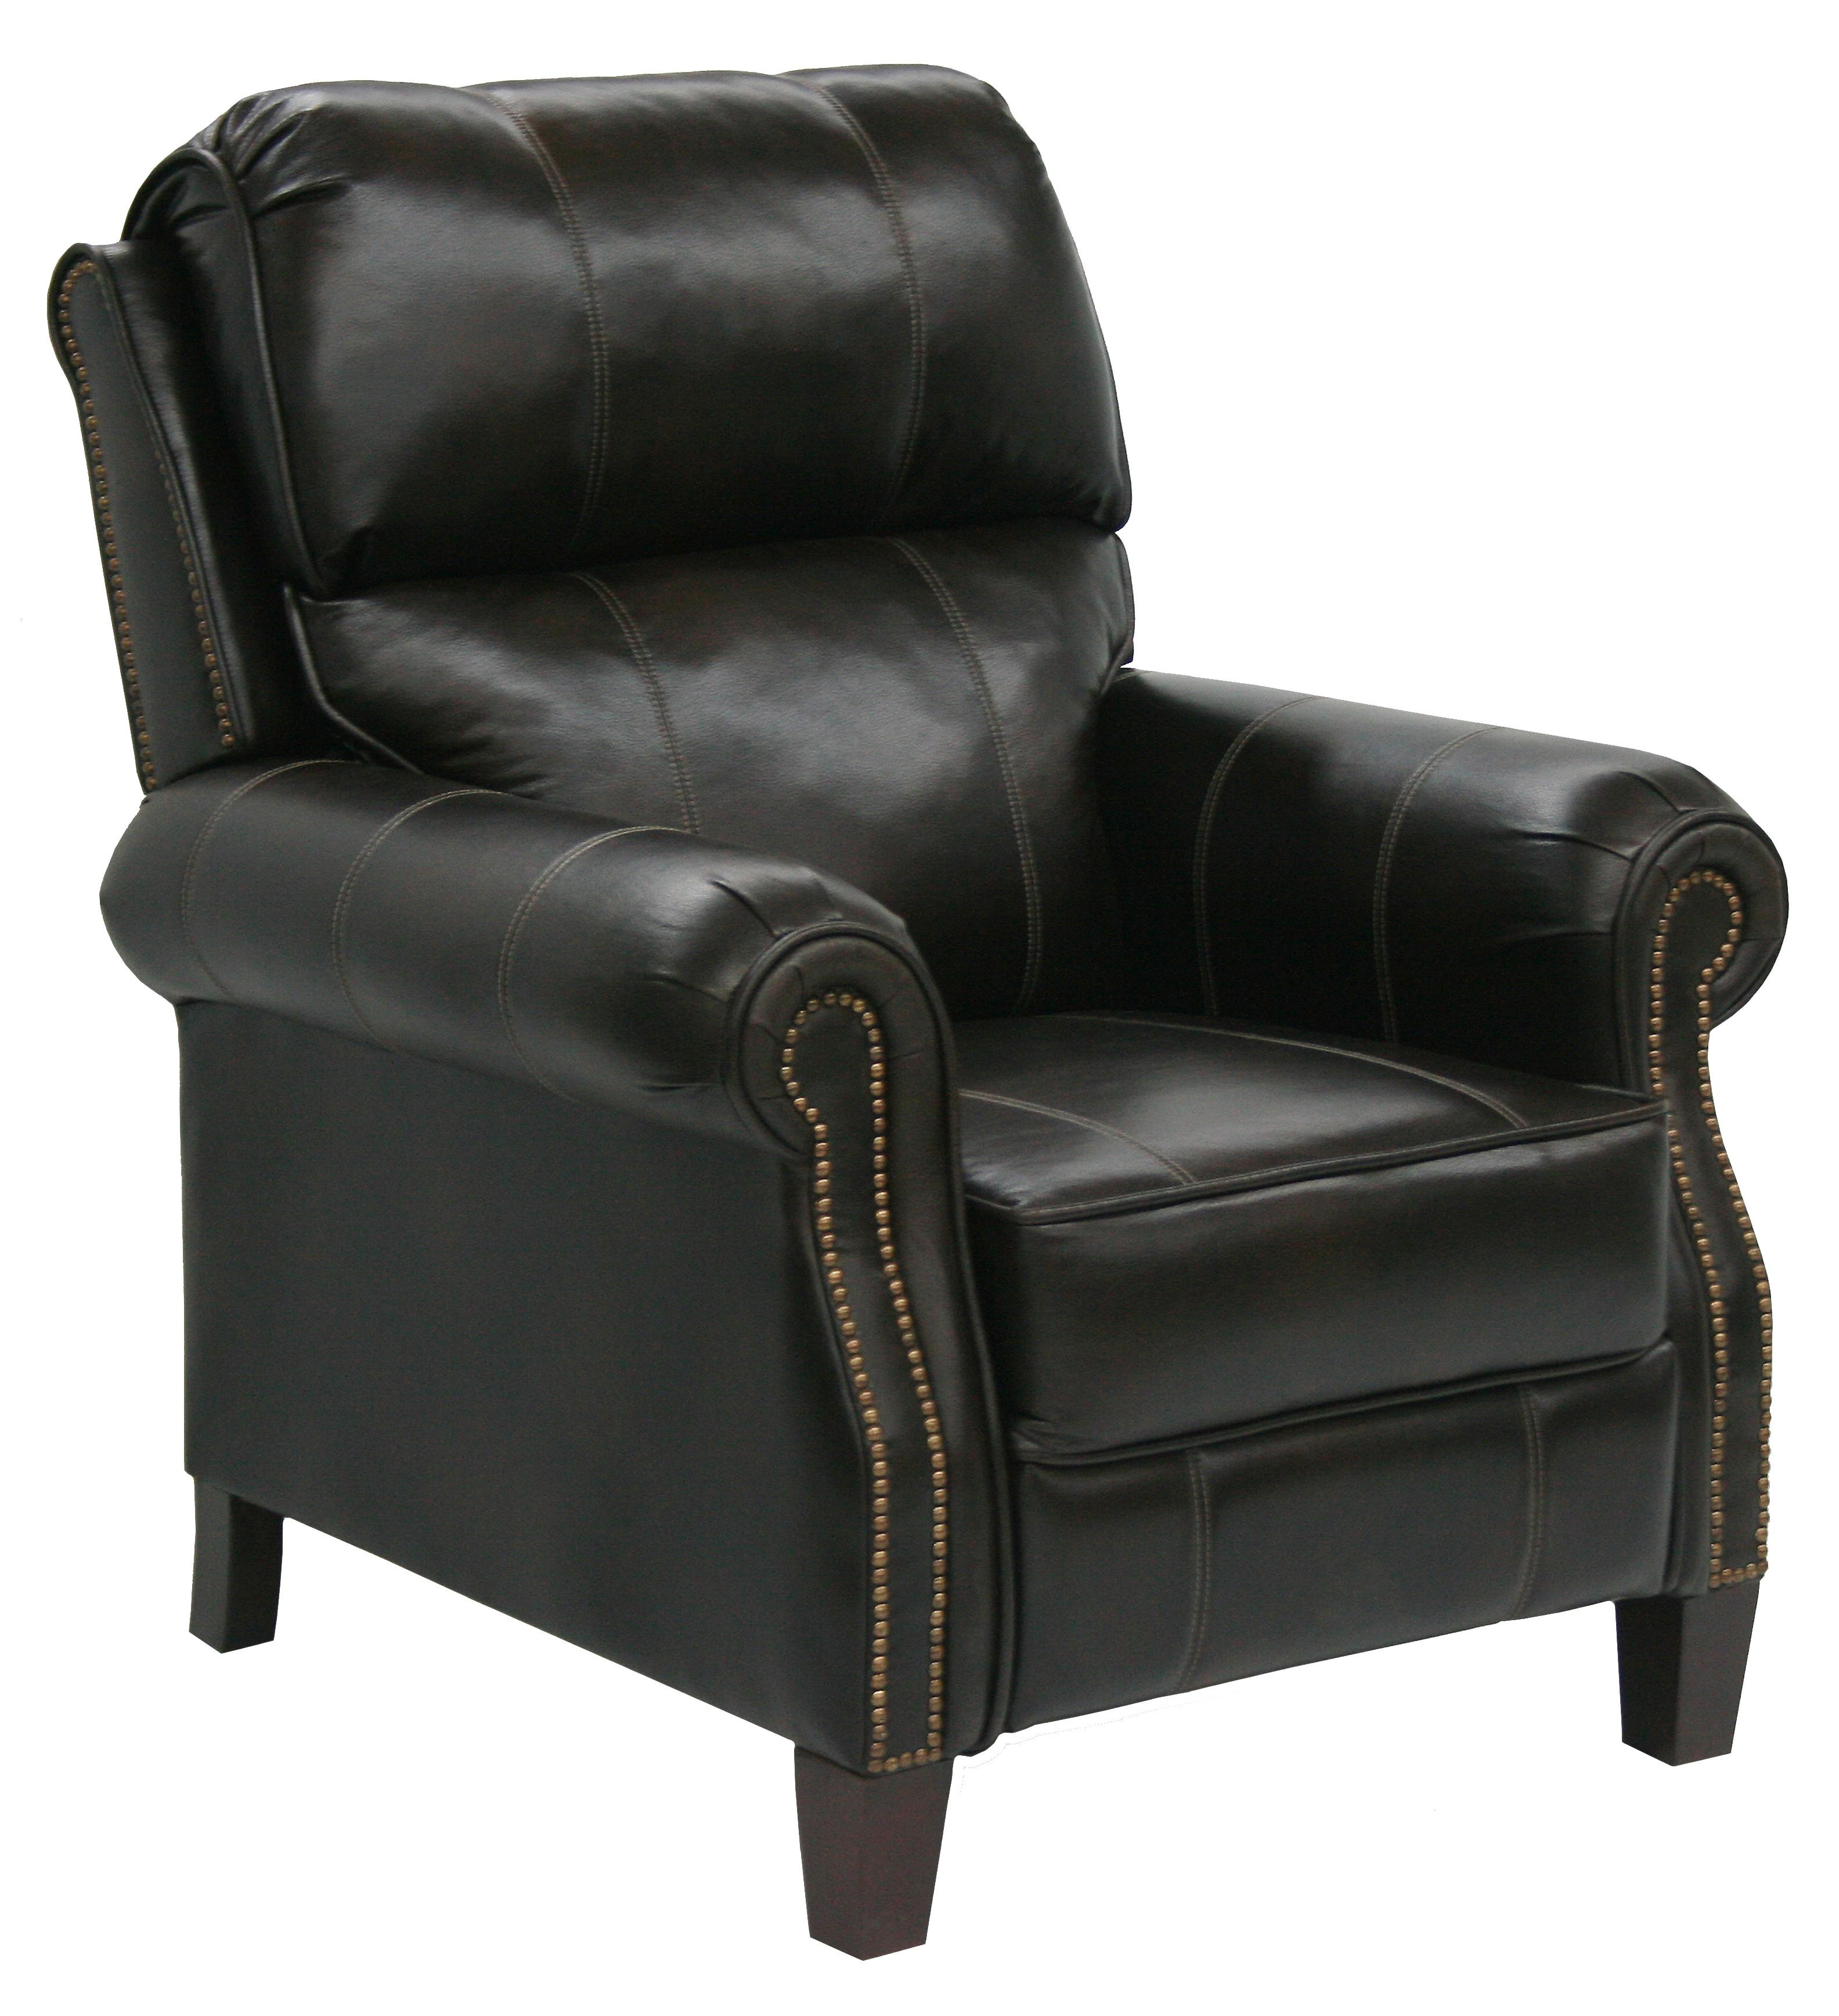 Bon Catnapper Motion Chairs And Recliners Frazier High Leg Recliner   Item  Number: 5539 1218